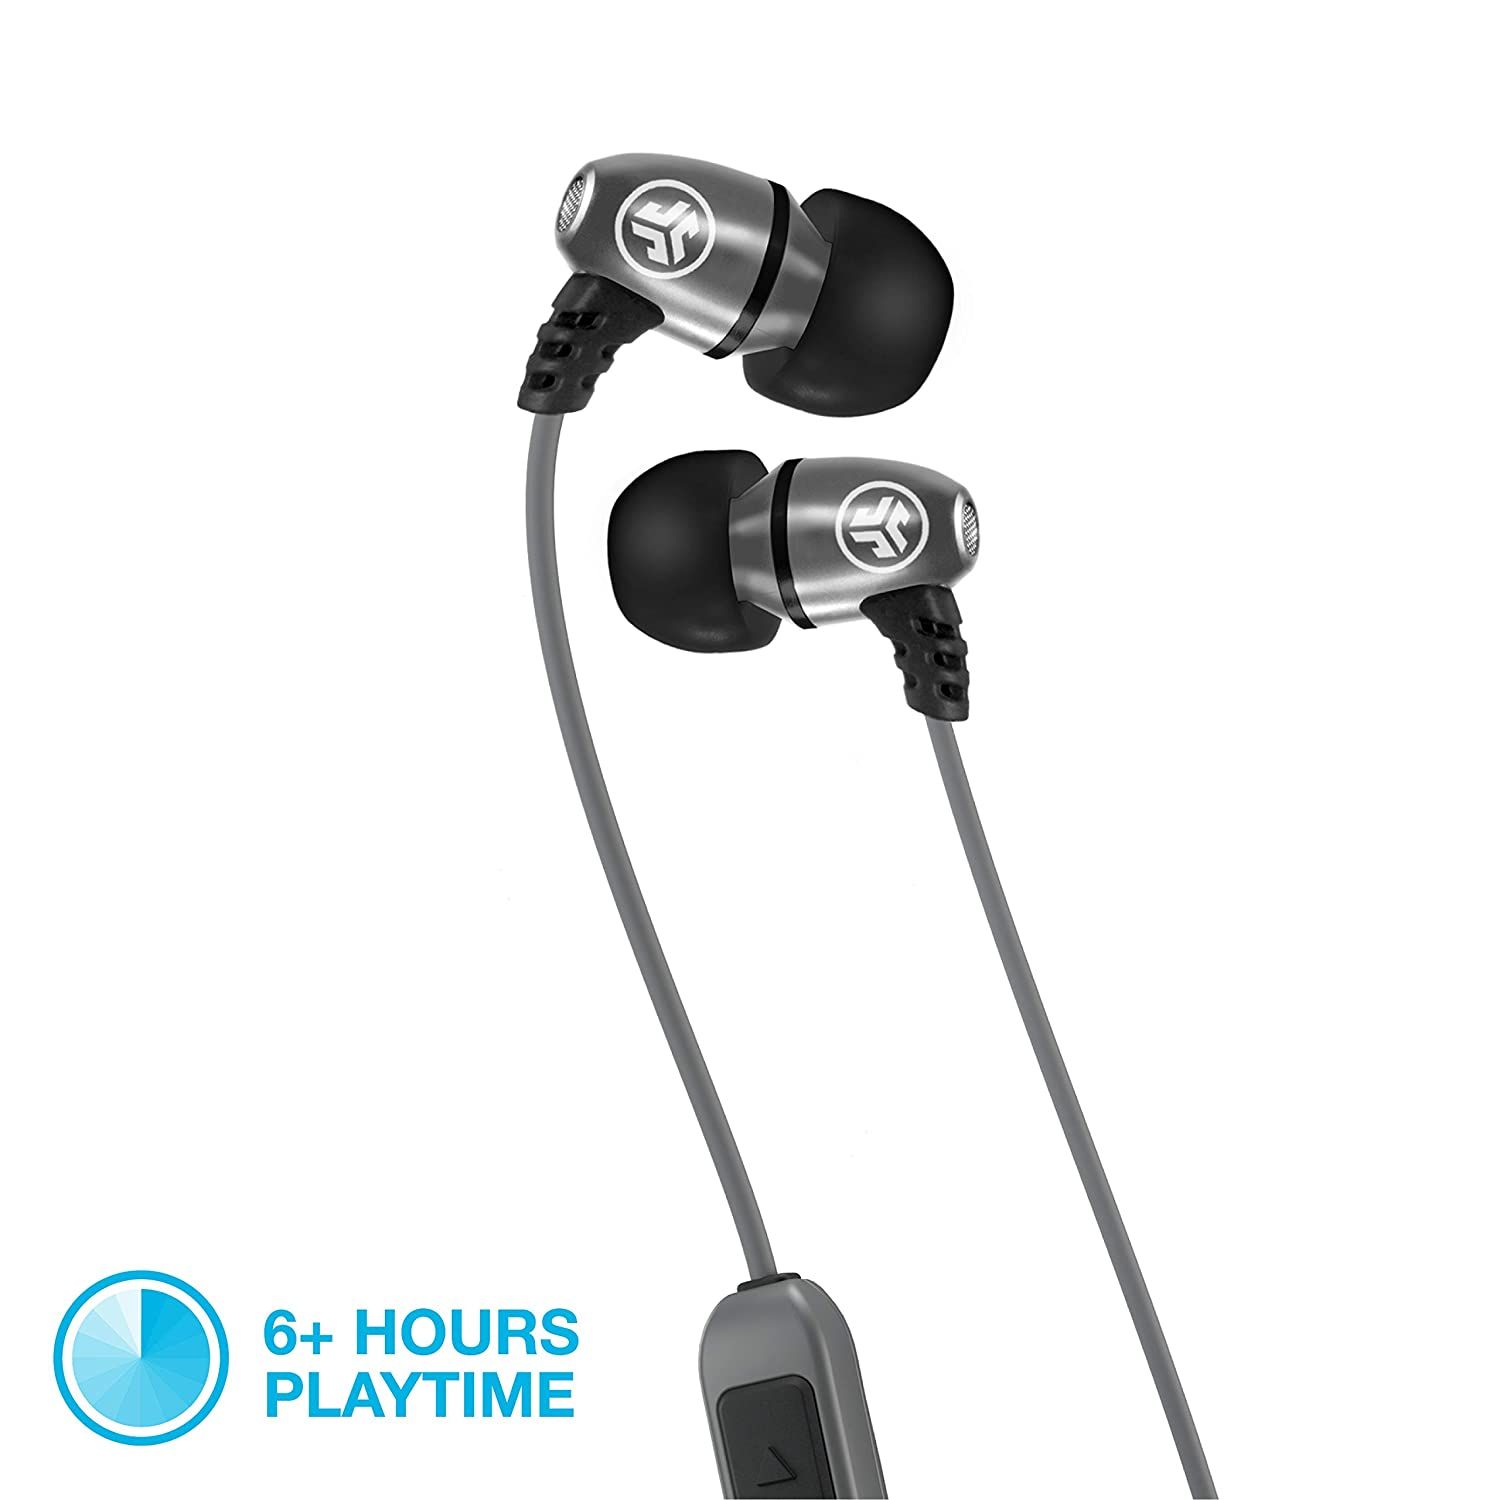 JLab Audio Metal Bluetooth Wireless Rugged Earbuds   Titanium 8mm Drivers    6 Hour Battery Life   Noise Isolation   Bluetooth 5 0   IP55 Sweat Proof